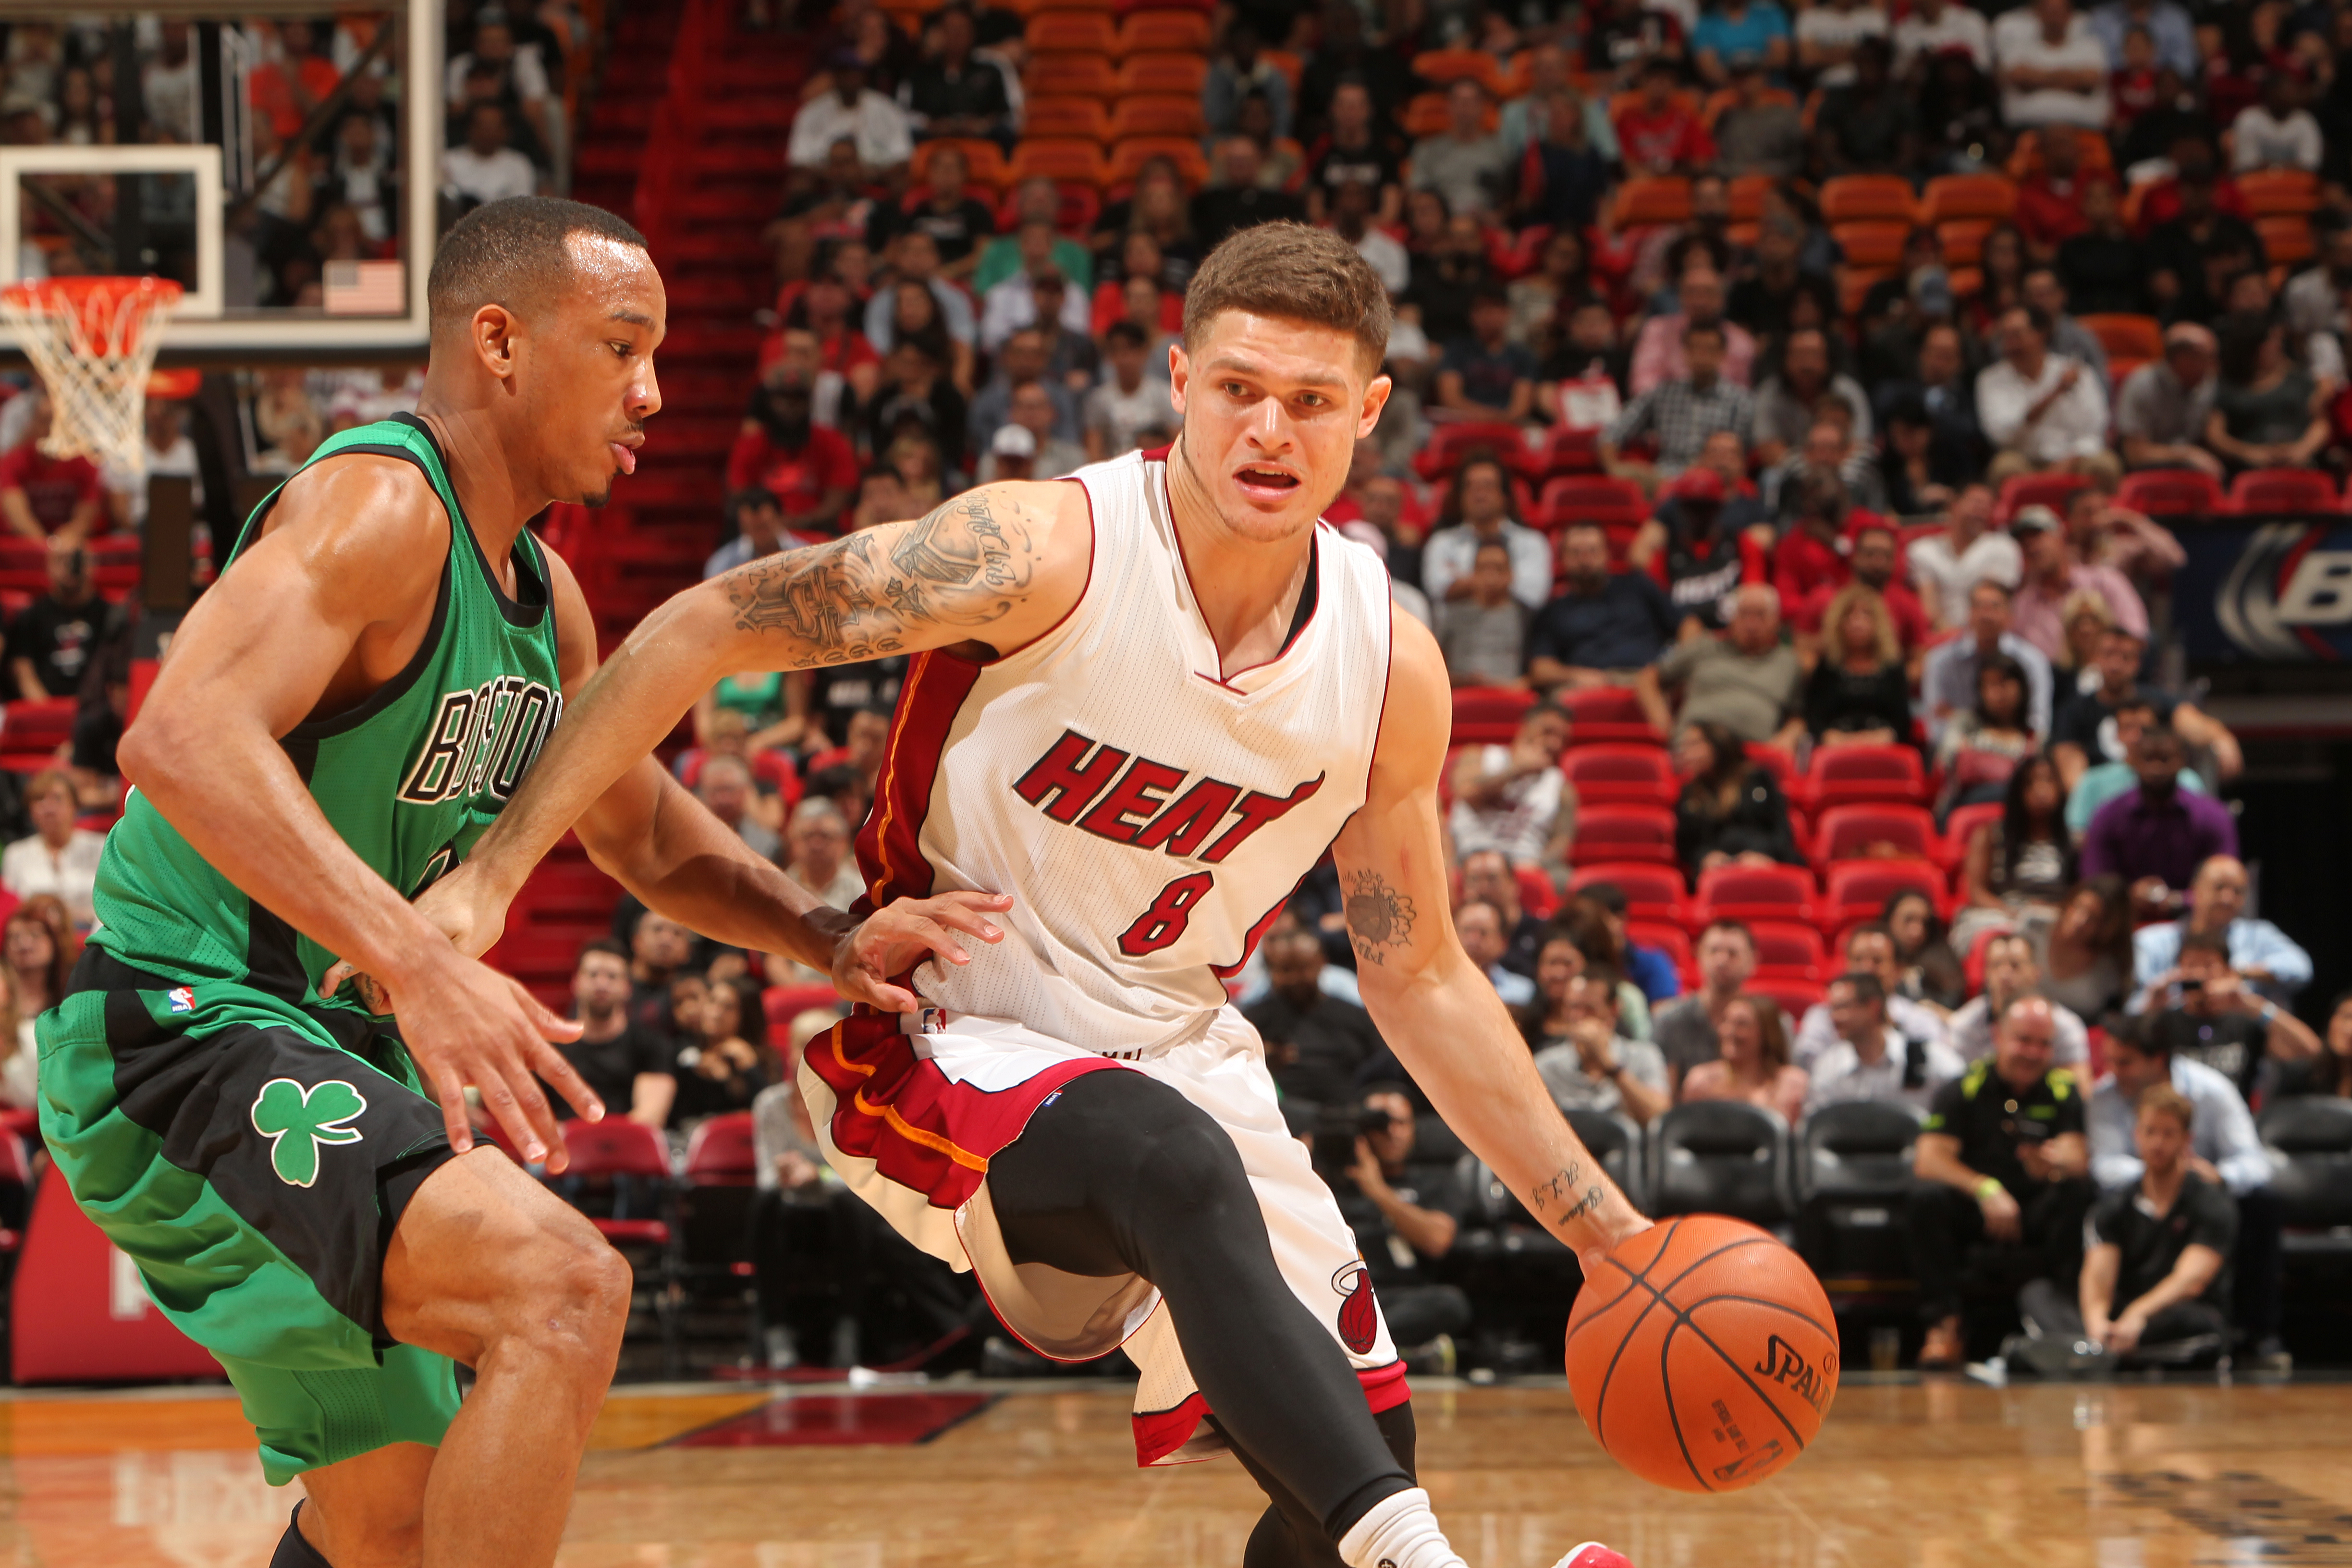 MIAMI, FL - NOVEMBER 30: Tyler Johnson #8 of the Miami Heat handles the ball against the Boston Celtics on November 30, 2015 at American Airlines Arena in Miami, Florida.  (Photo by Victor Baldizon/NBAE via Getty Images)